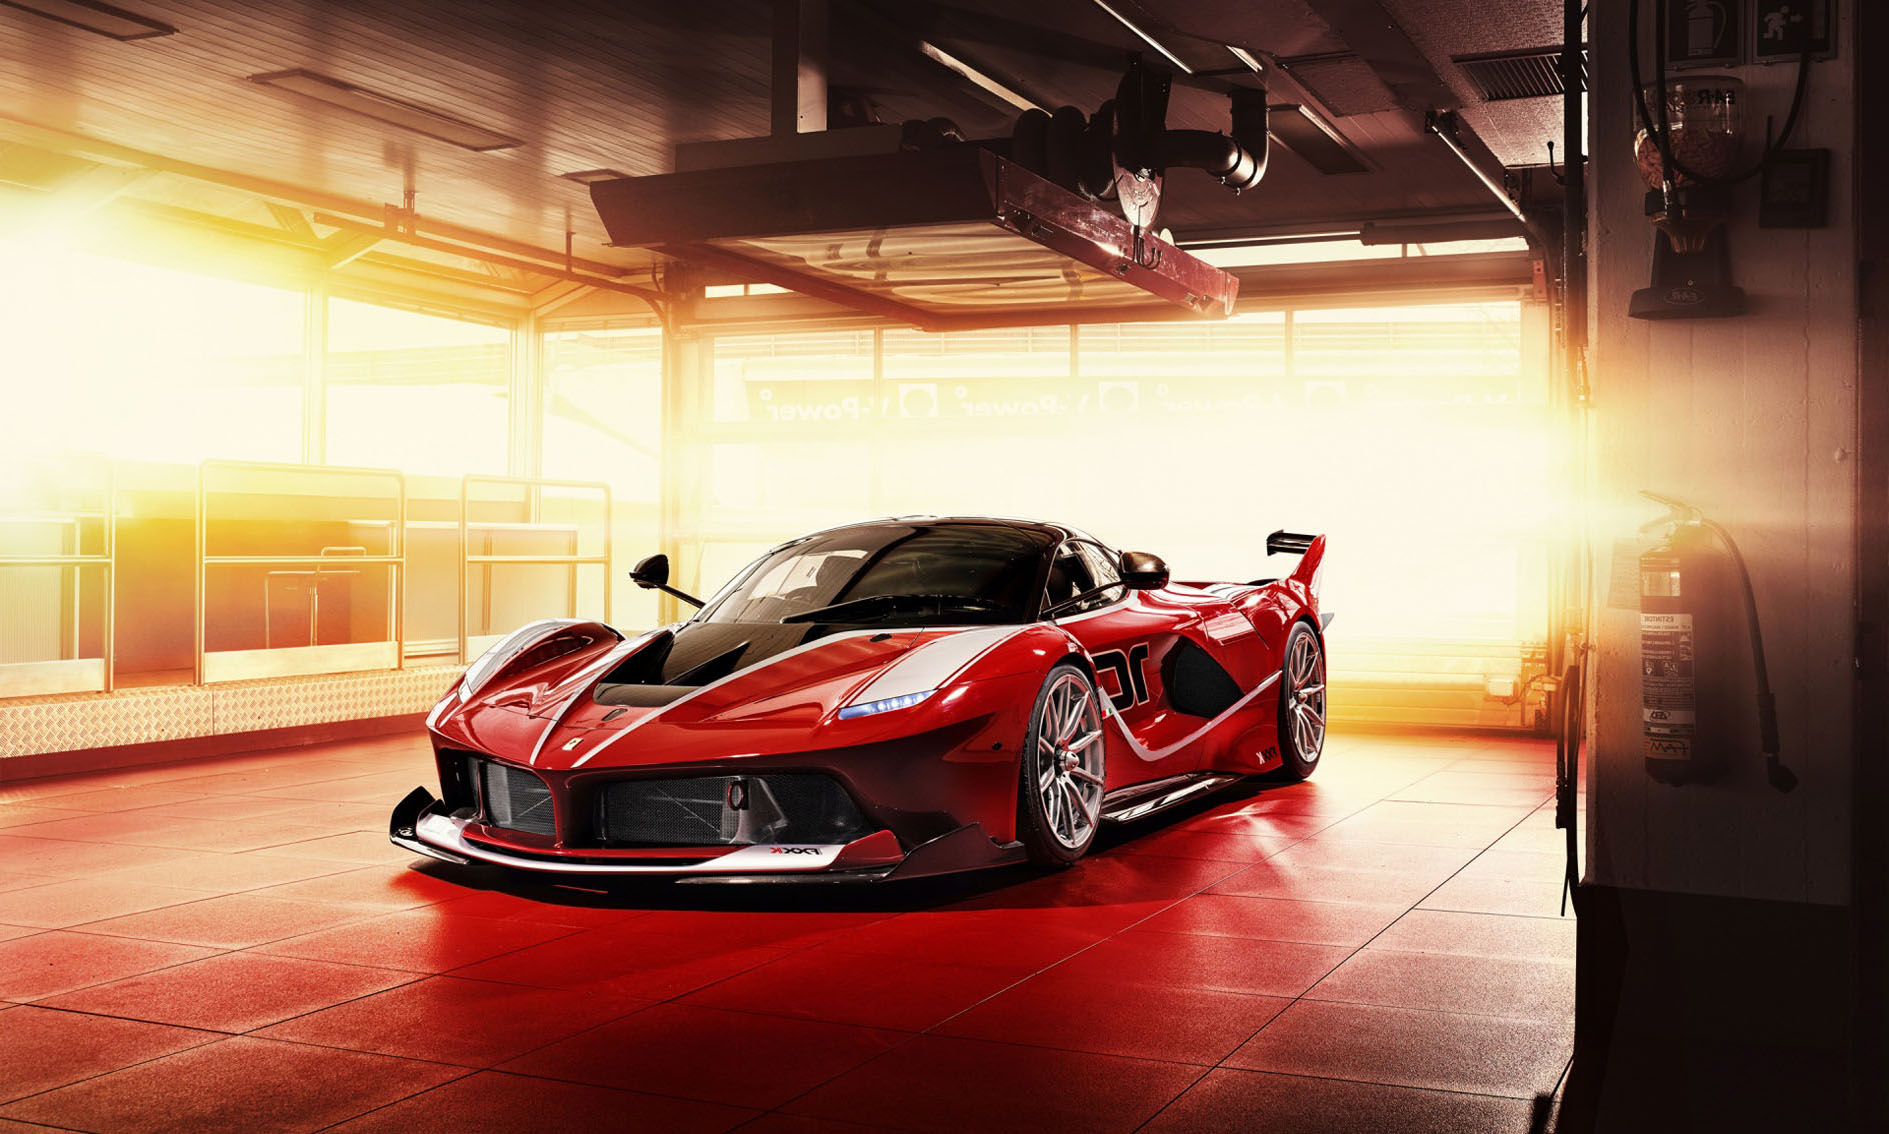 windows 10 car wallpaper ferrari fxx is hd wallpaper windows 10 1889x1134